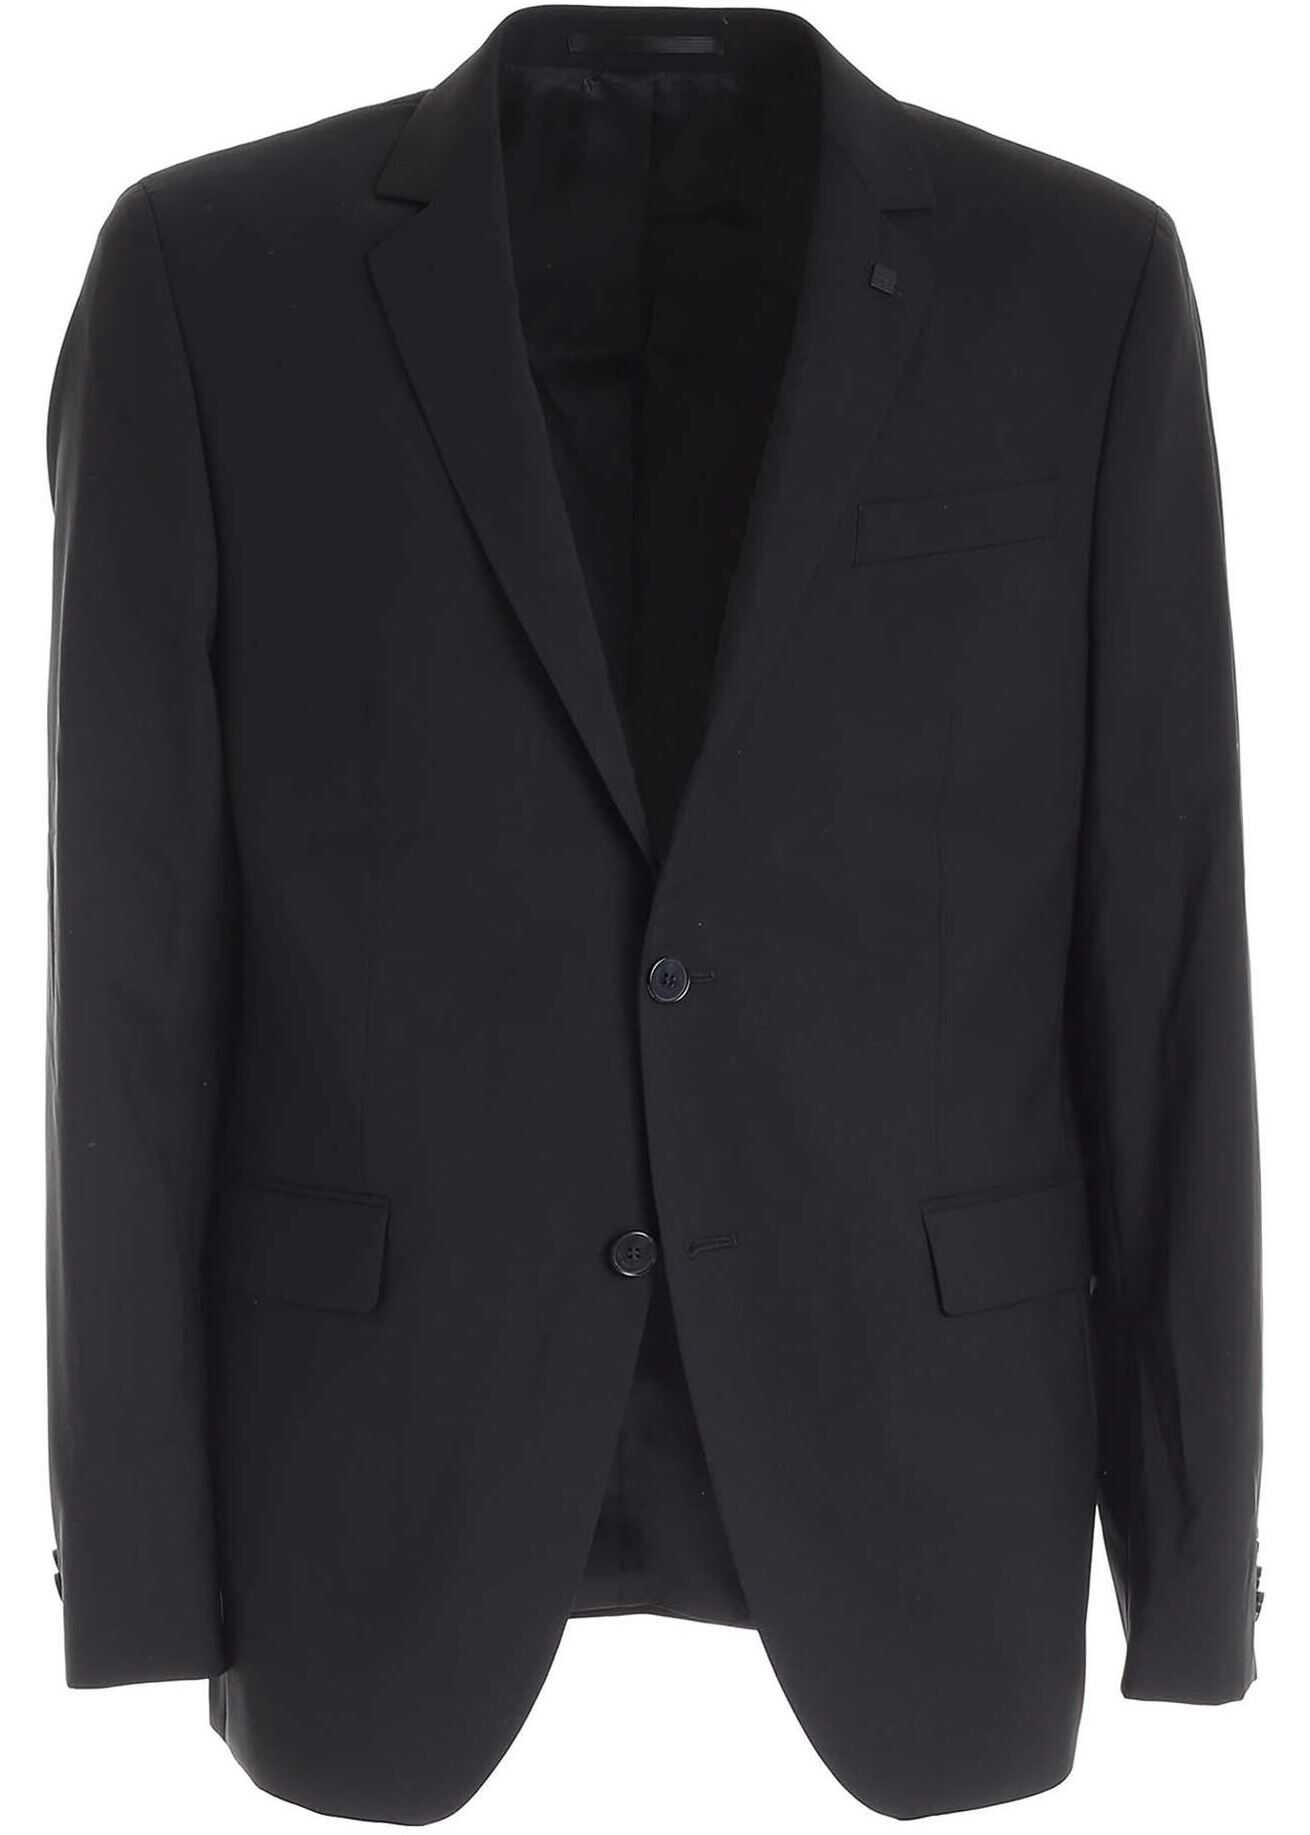 Karl Lagerfeld Two-Buttons Jacket In Black Black imagine